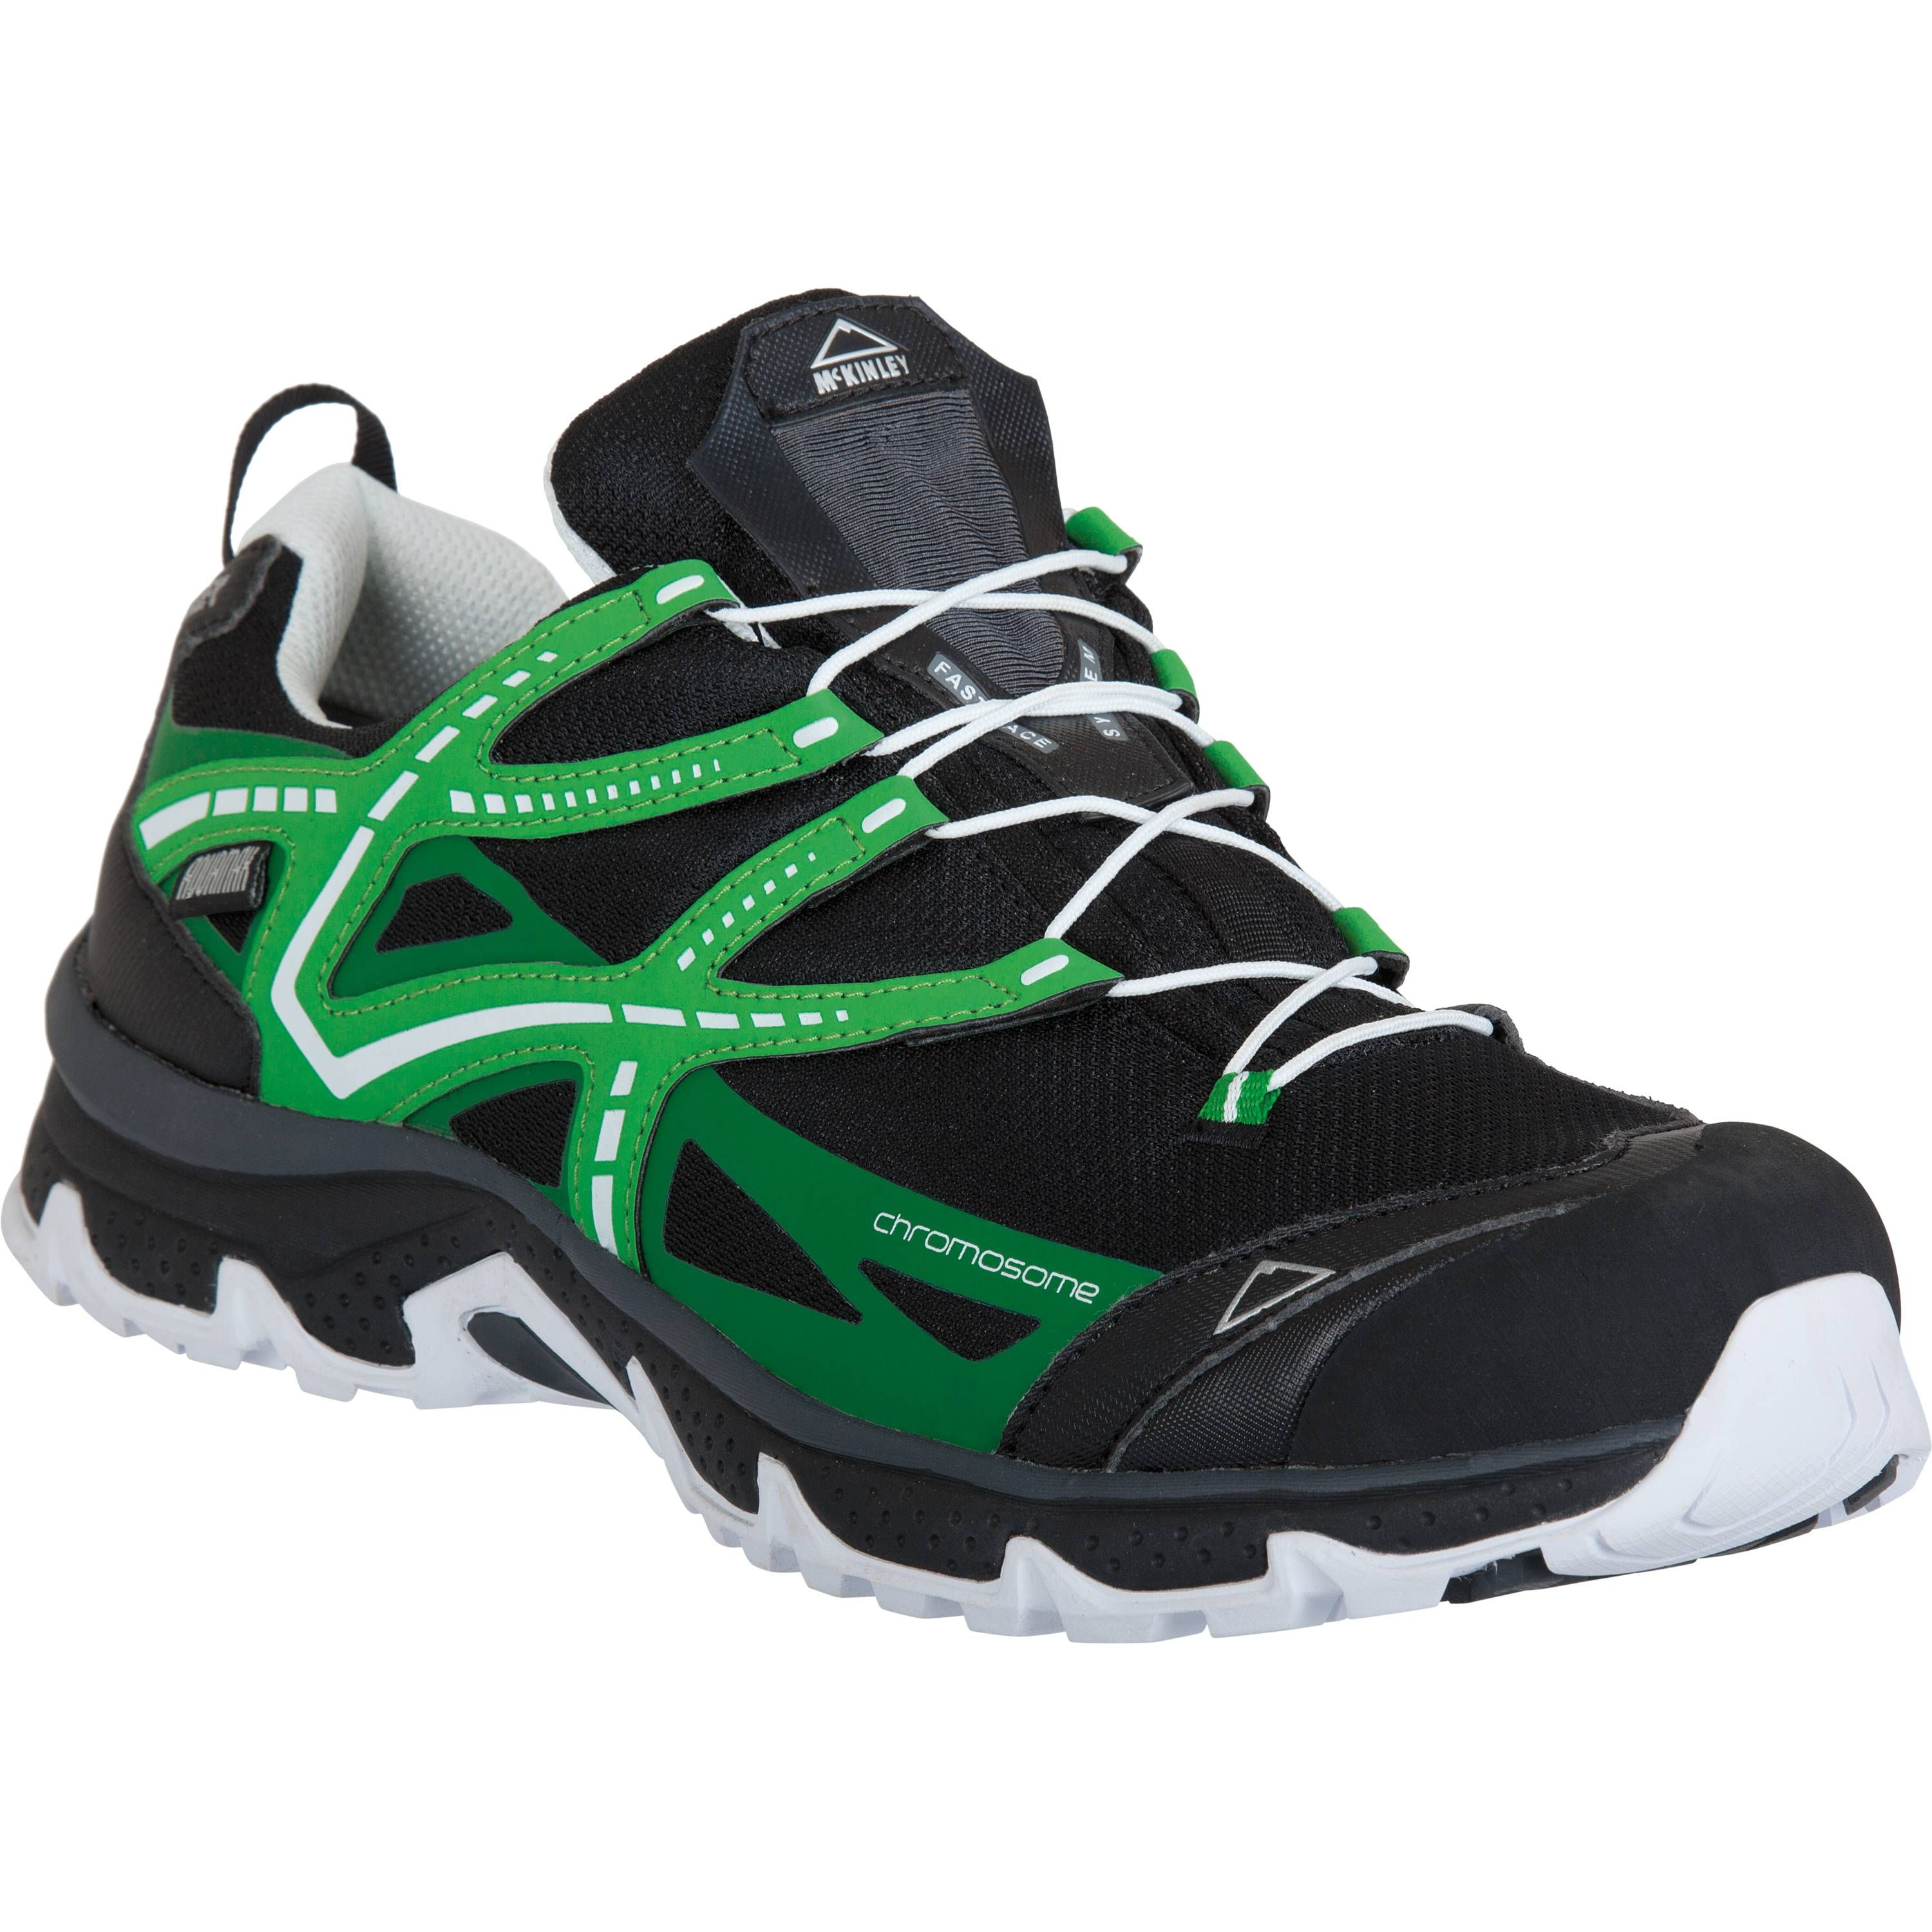 Outdoor Shoes : Chromosome AQX M : McKINLEY | Shoes